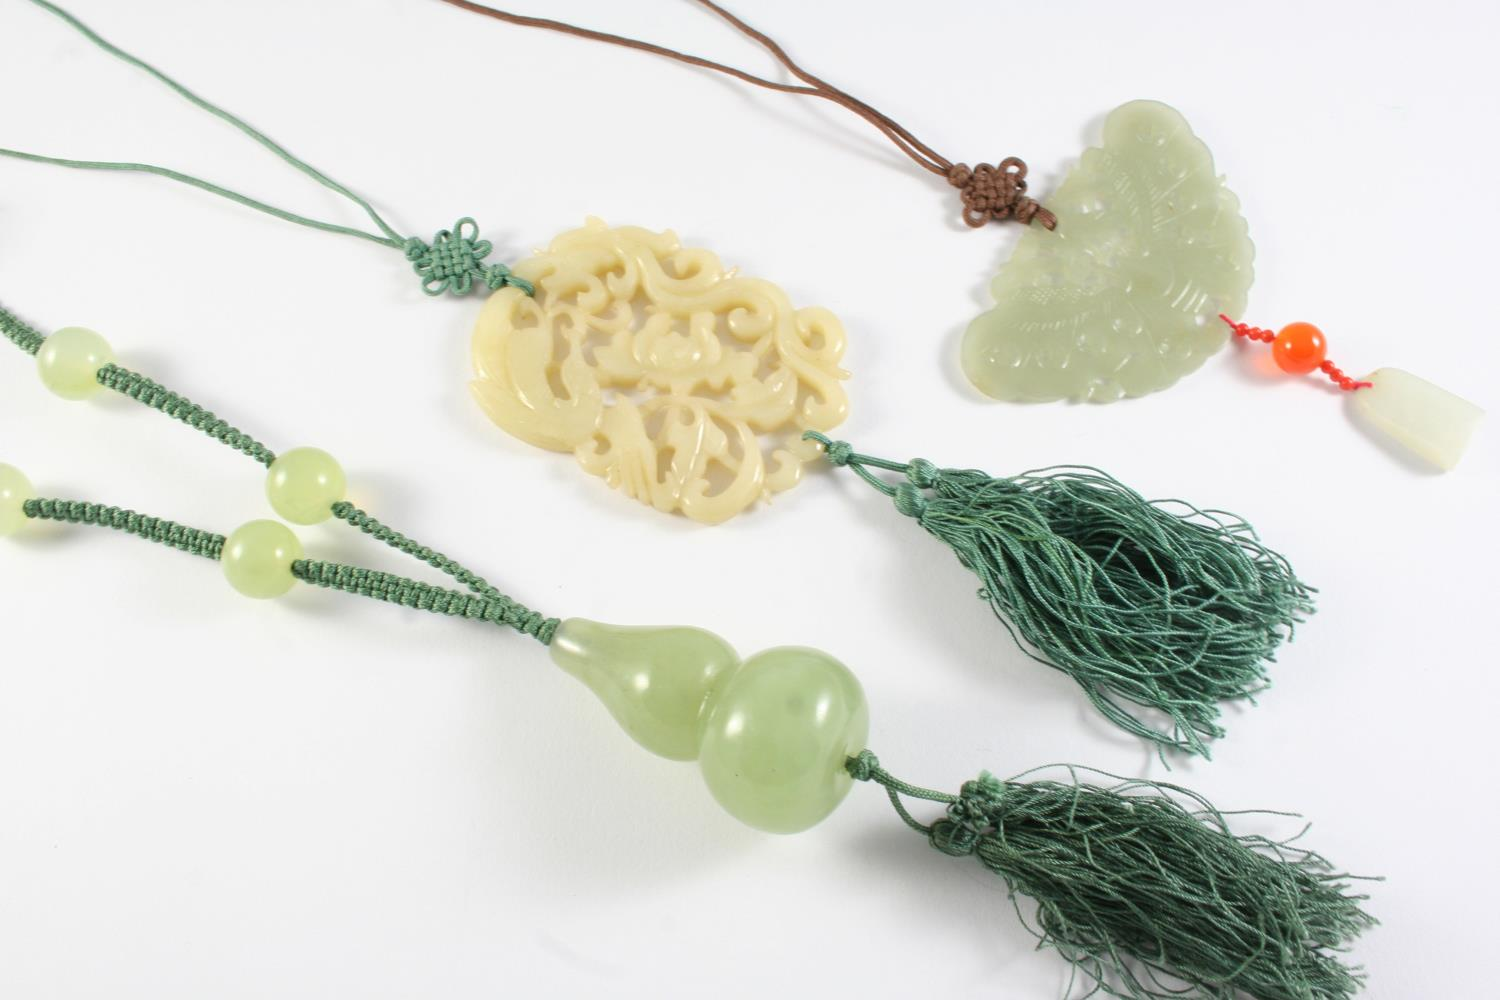 A CARVED JADE PENDANT of bird and foliate decoration, 6.5cm long, together with another carved